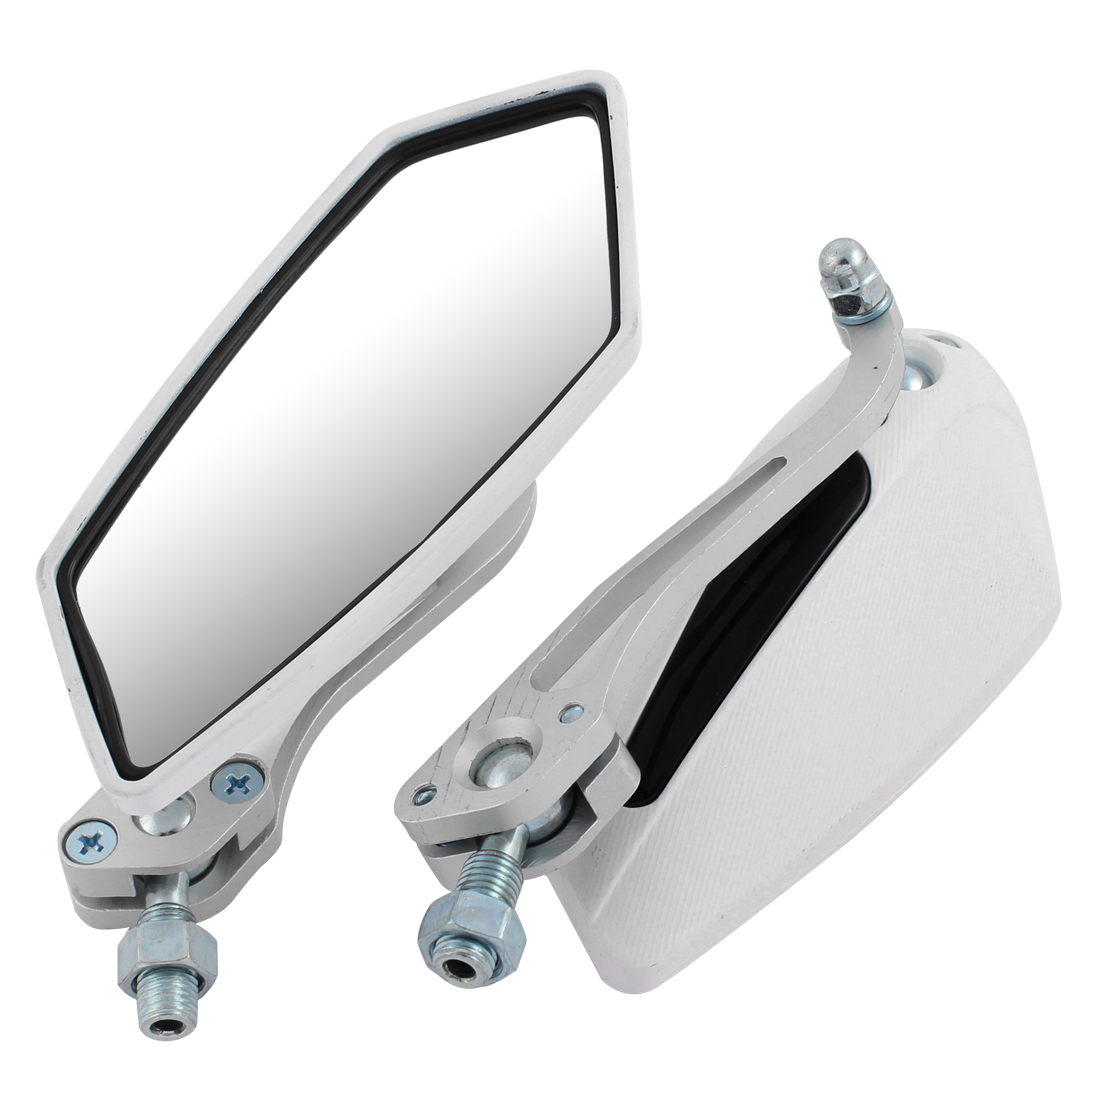 2 Pcs White Polygon Shaped Motorcycle Blind Spot Rear View Mirror